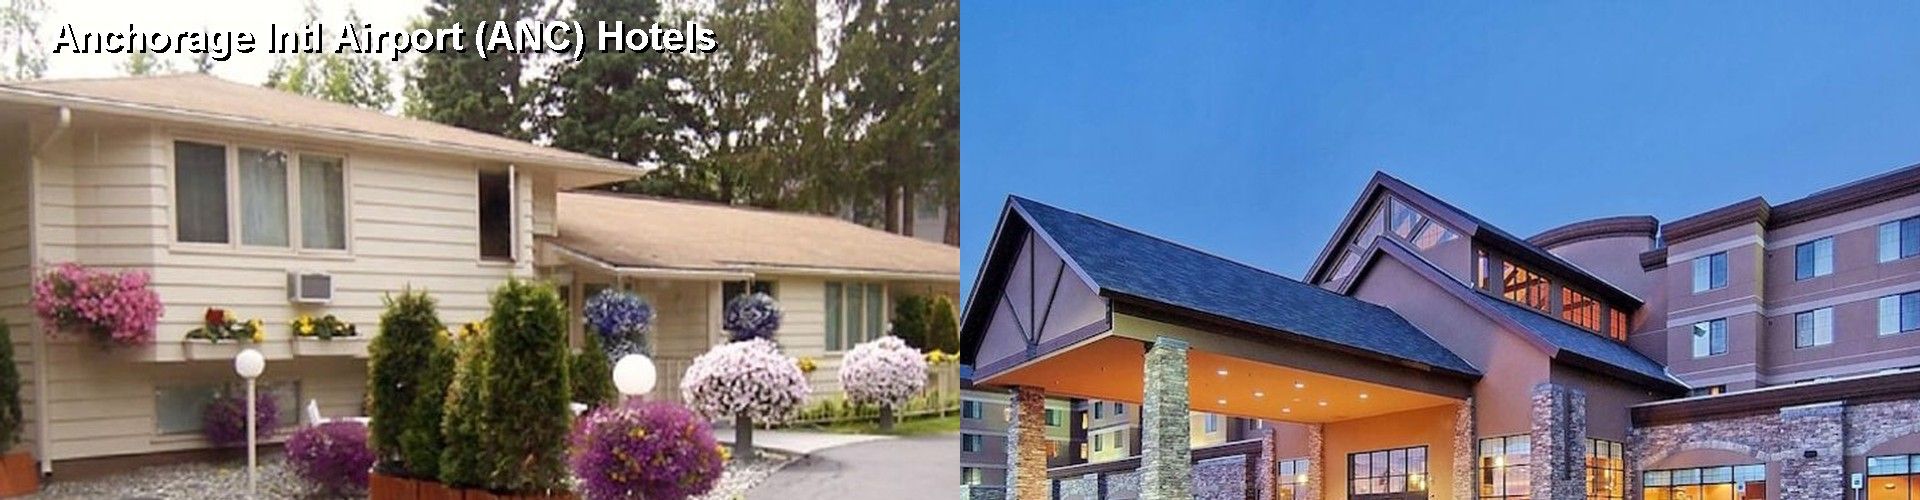 5 Best Hotels Near Anchorage Intl Airport Anc